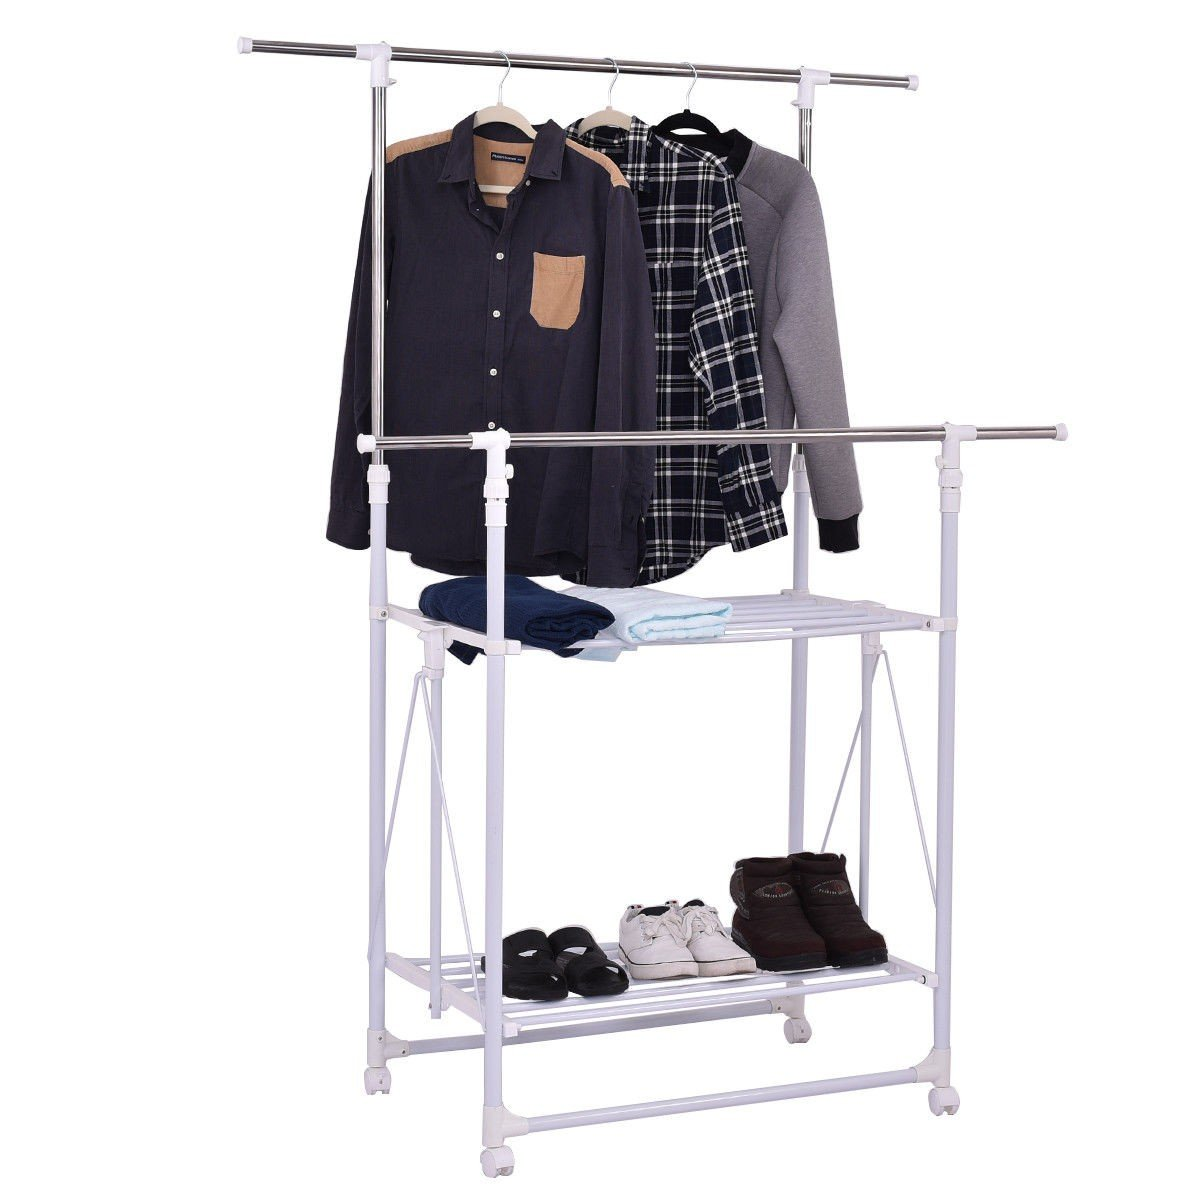 Double Rail Folding Adjustable Rolling Clothes Rack Hanger w/ 2 Shelves - By Choice Products